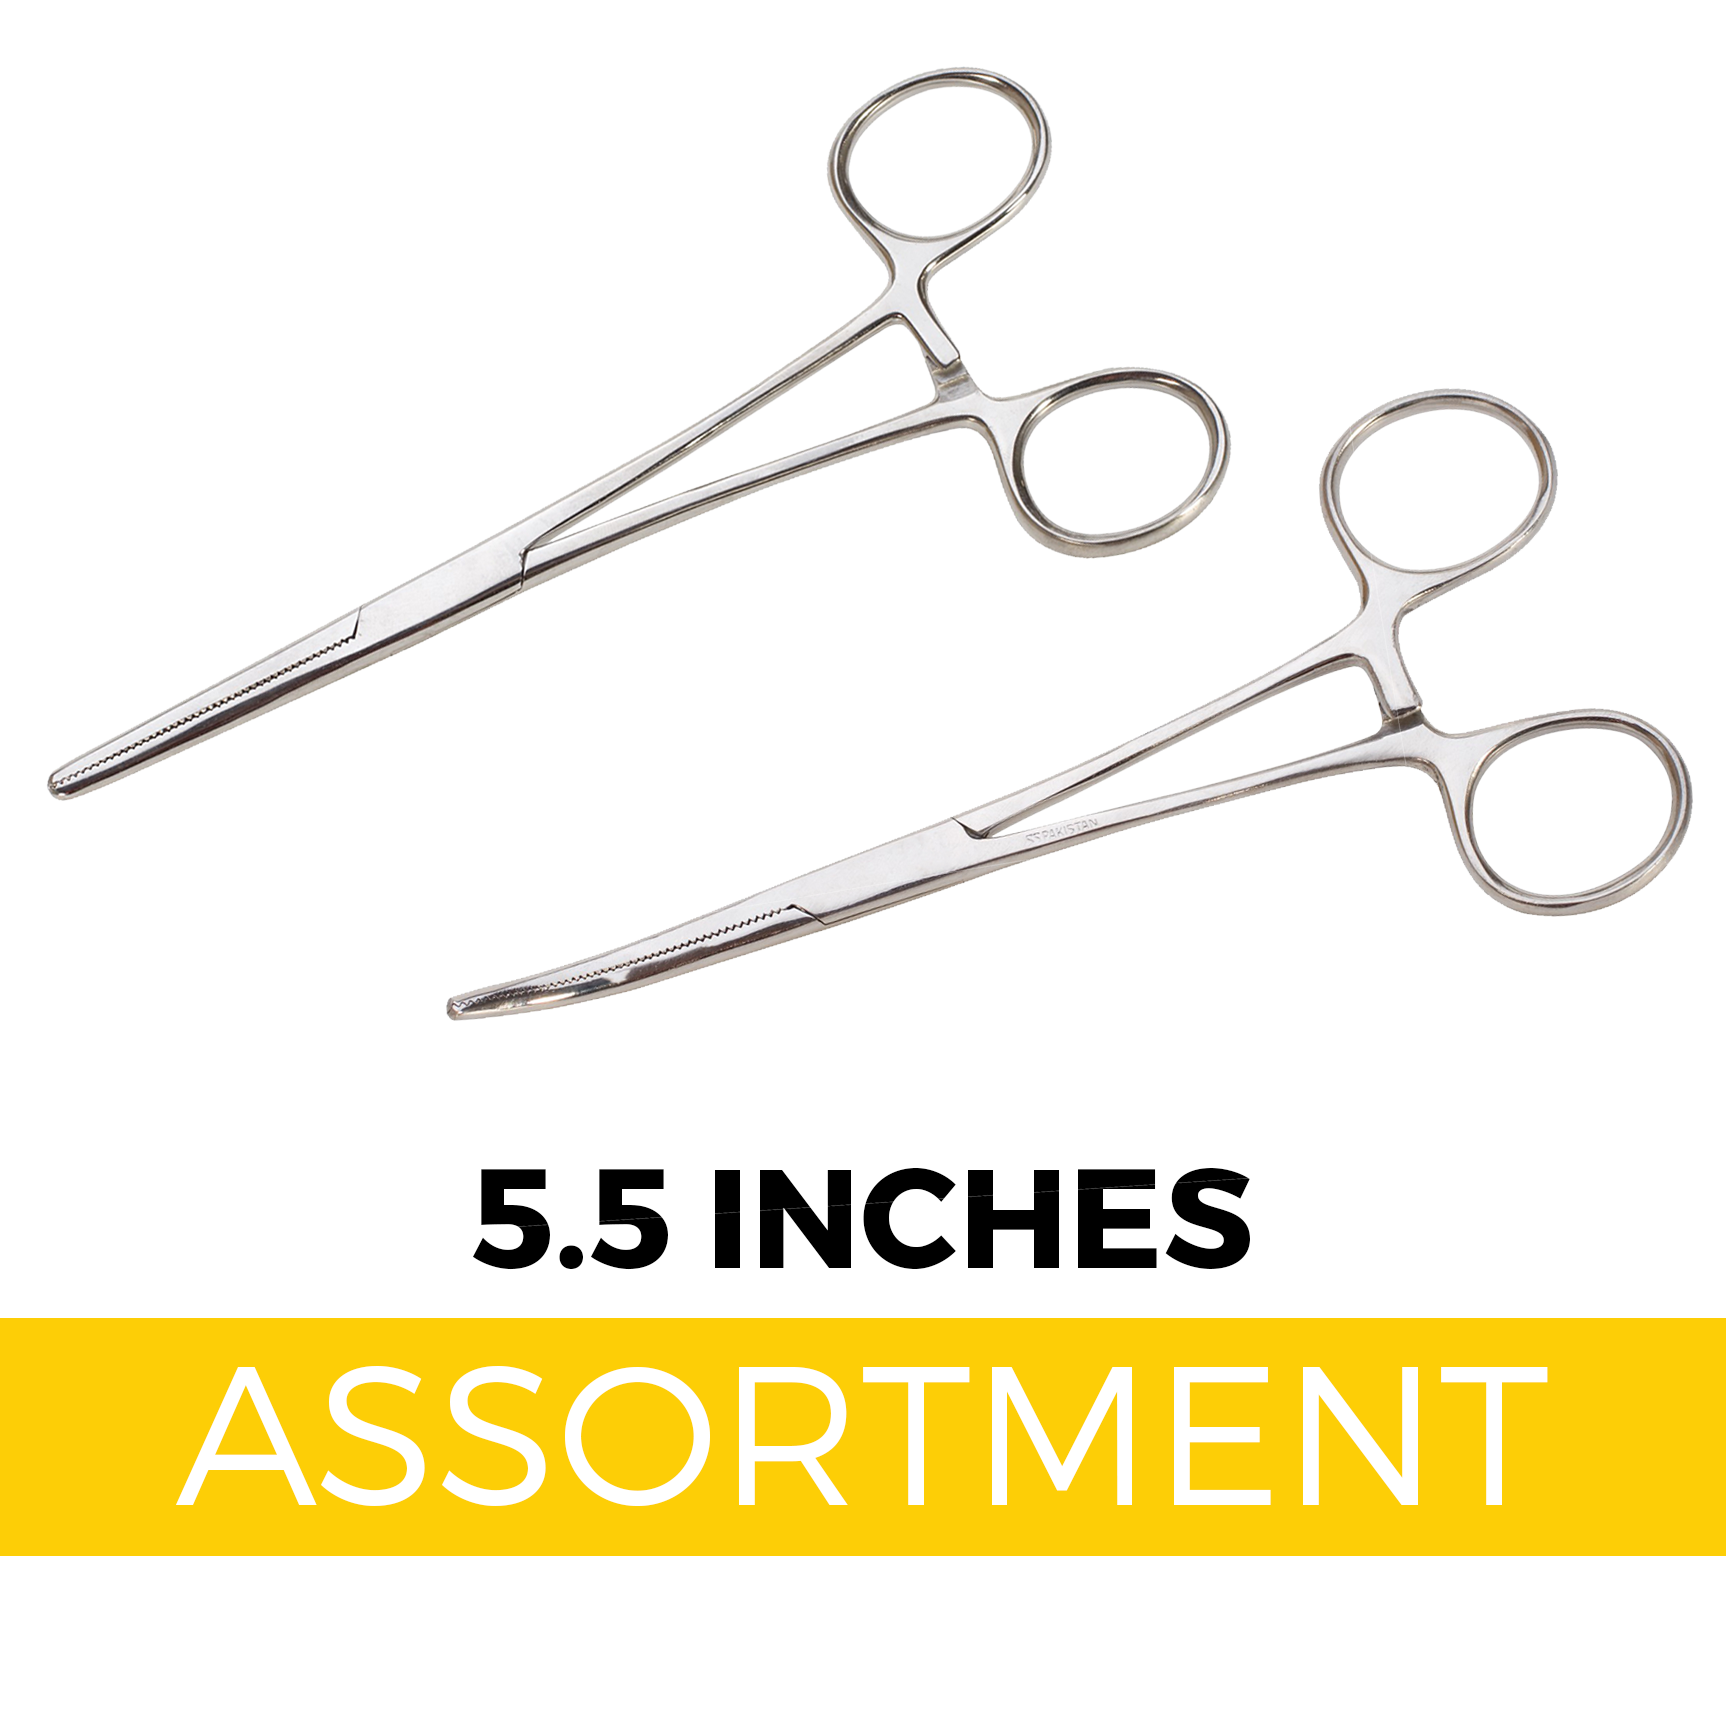 "Handy Clamps - 5.5"" Forceps Assortment (20 pc Display)"